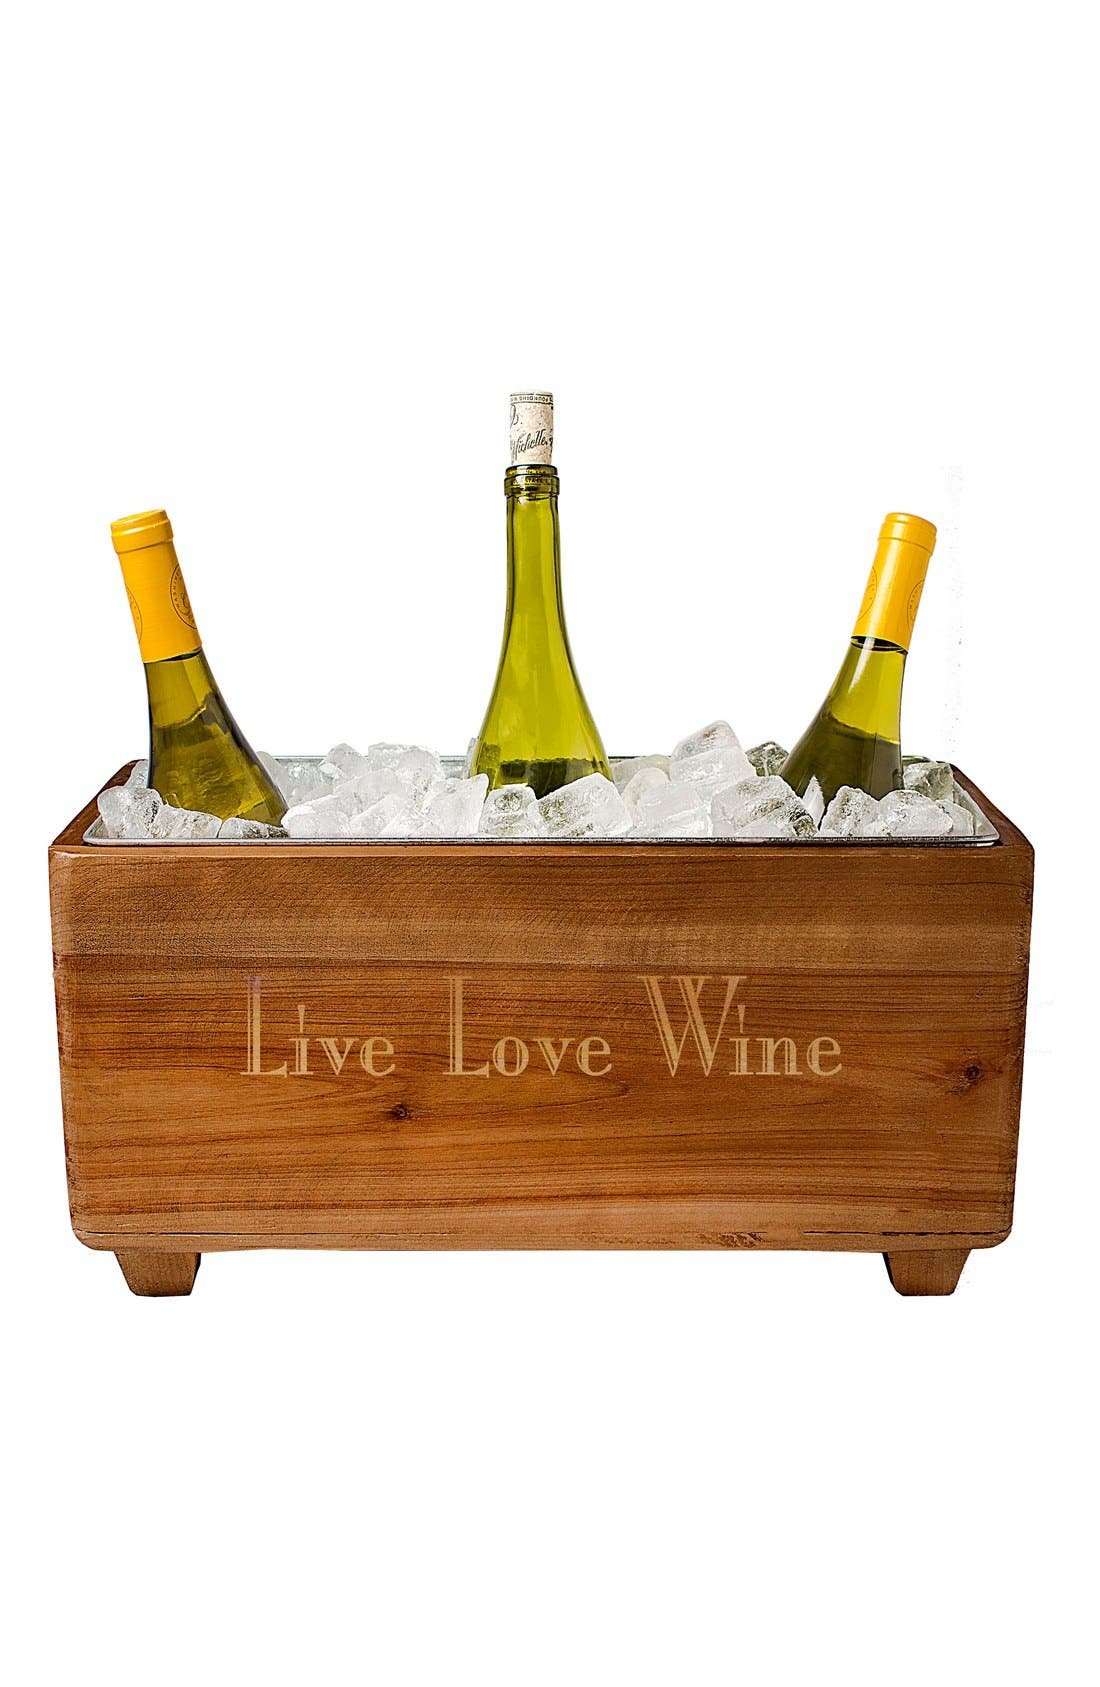 Alternate Image 1 Selected - Cathy's Concepts Live Love Wine Wooden Wine Trough